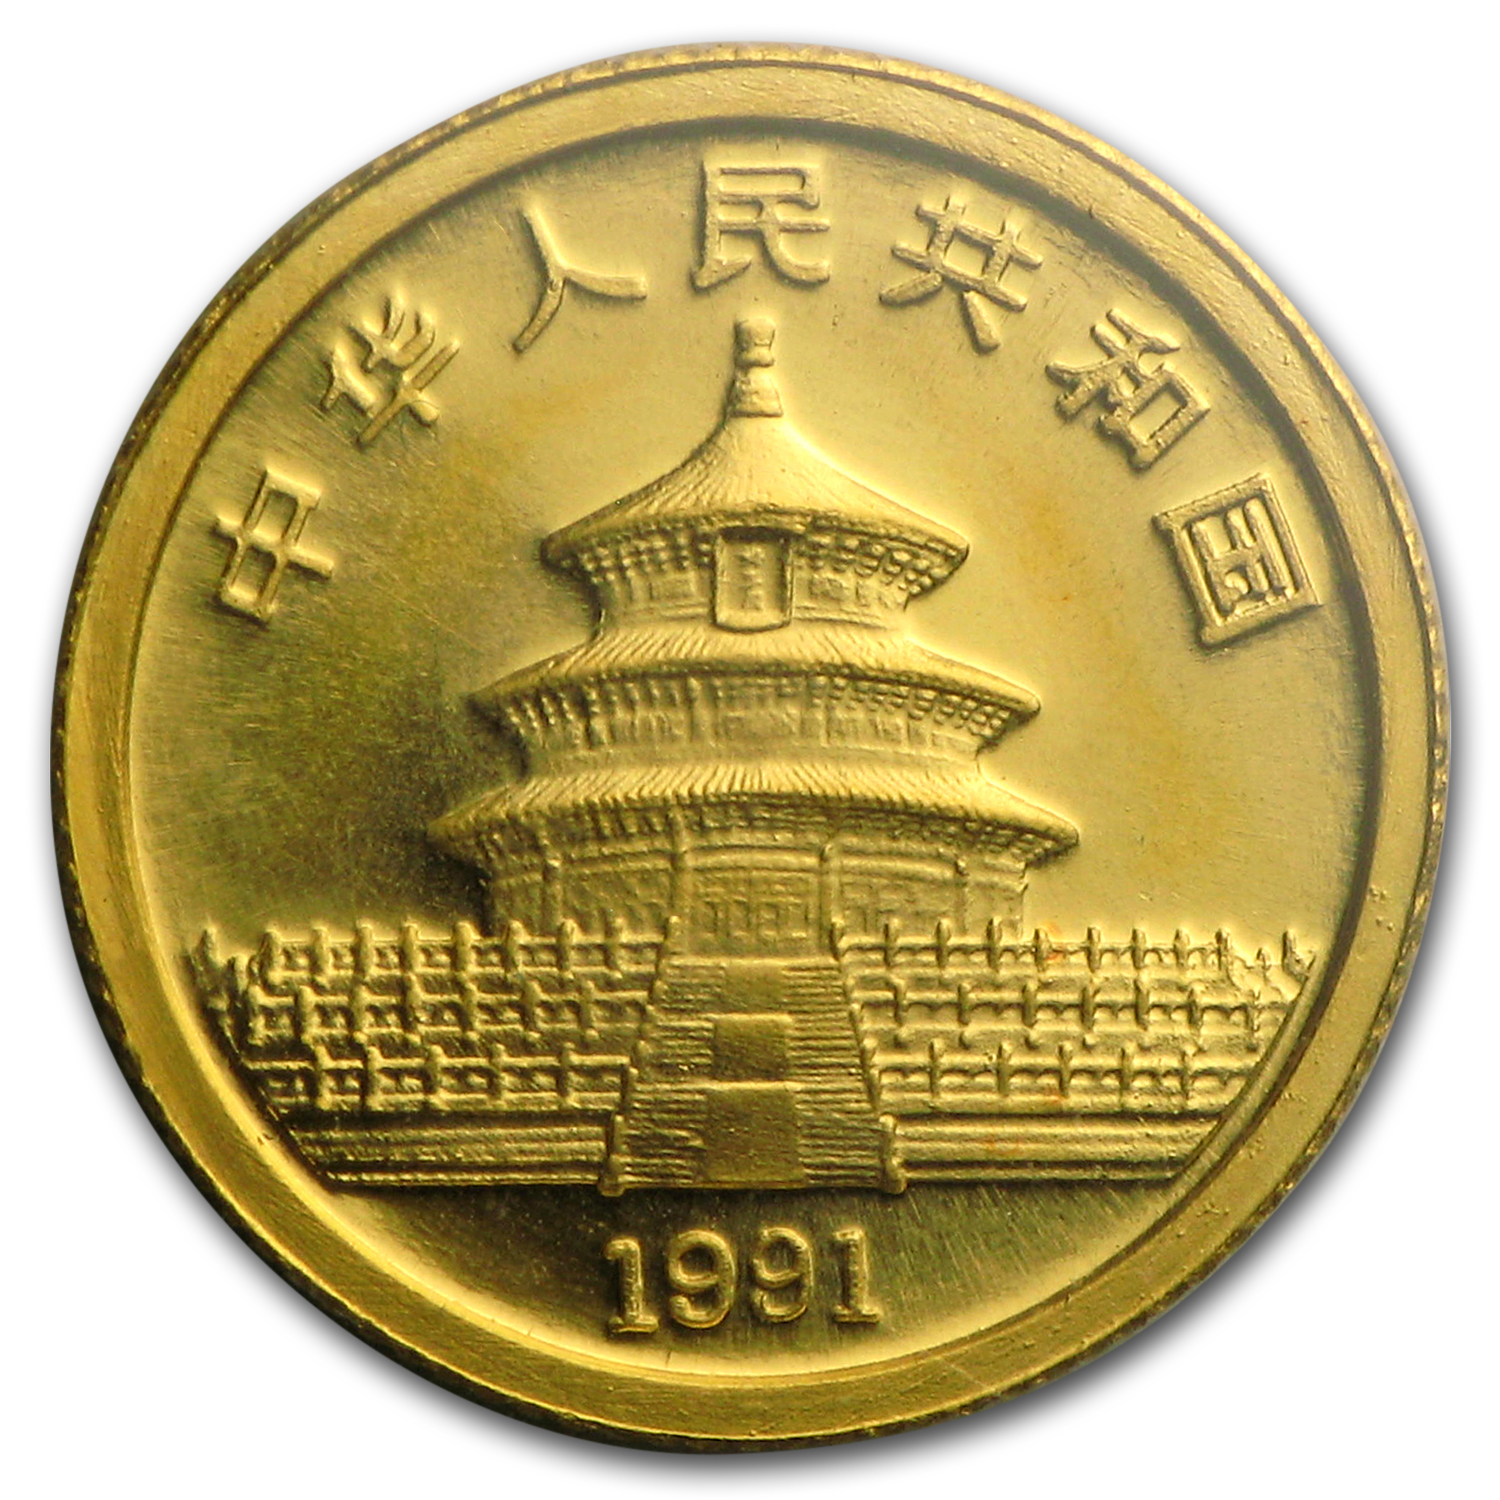 1991 China 1/20 oz Gold Panda Large Date BU (Sealed)